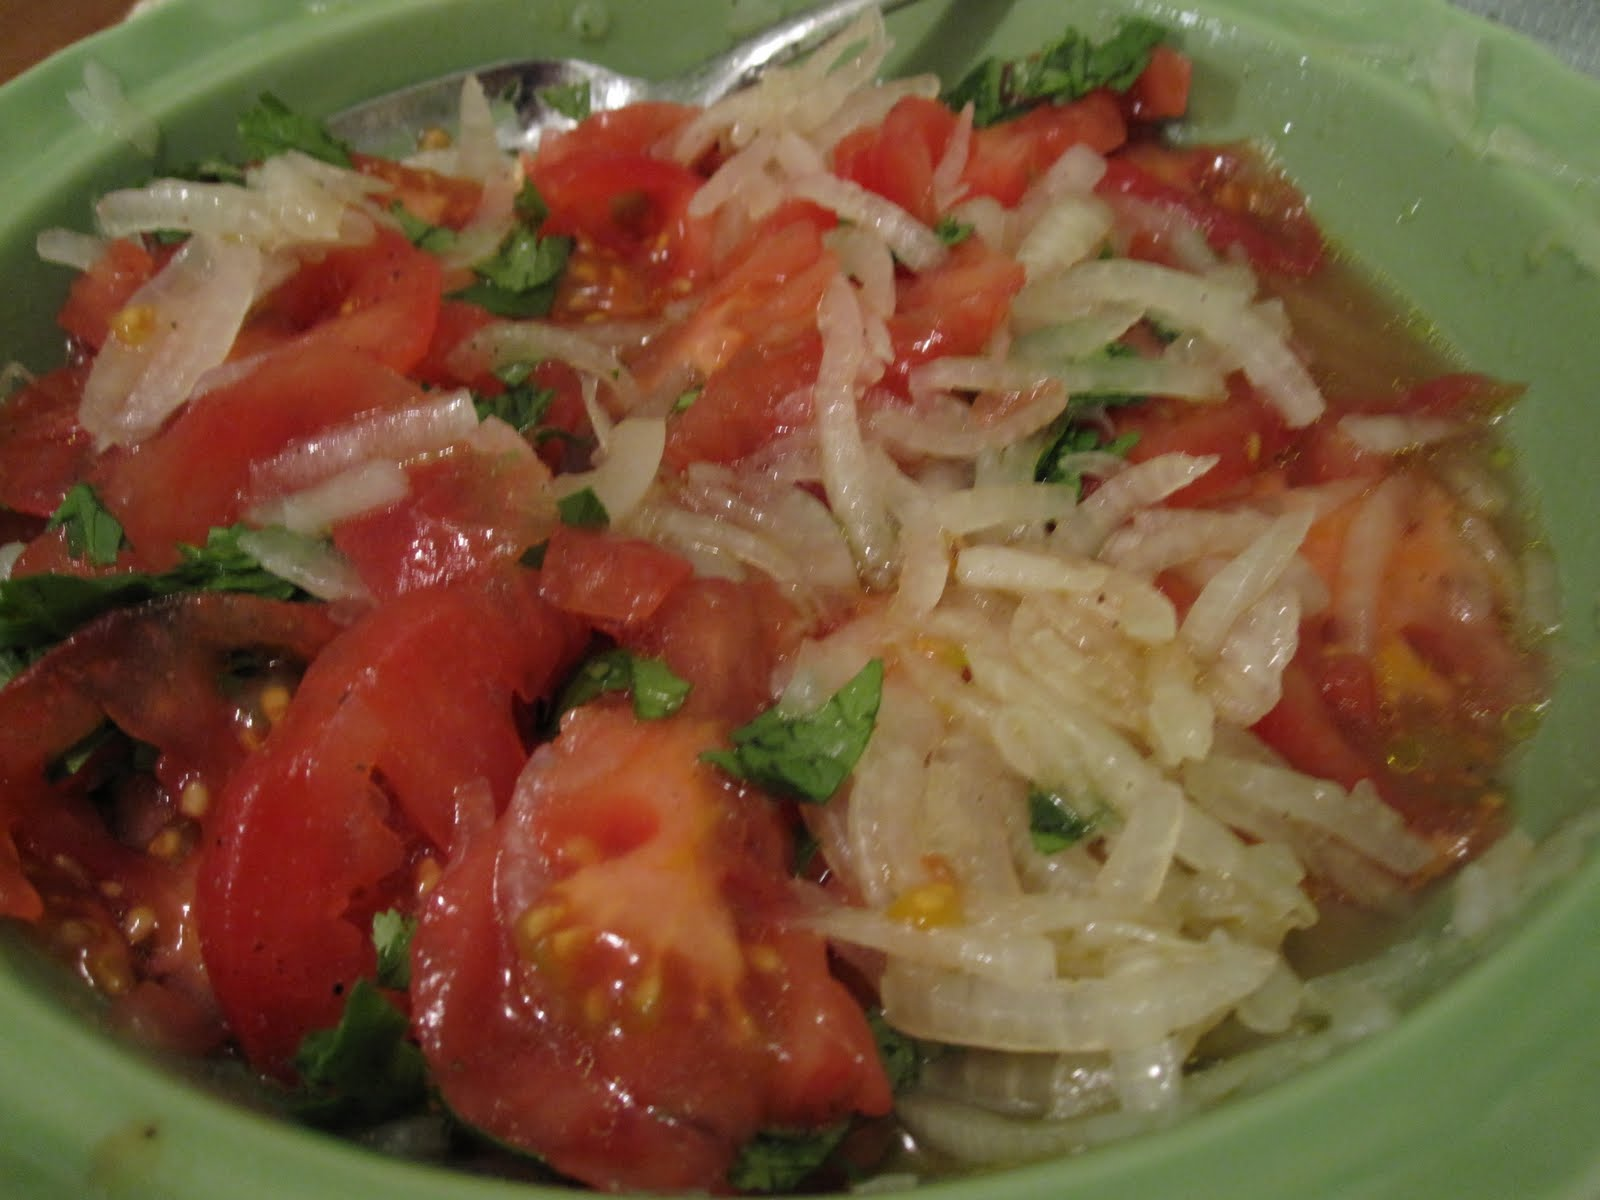 Elizabeth's Dutch Oven: Chilean Tomato and Onion Salad